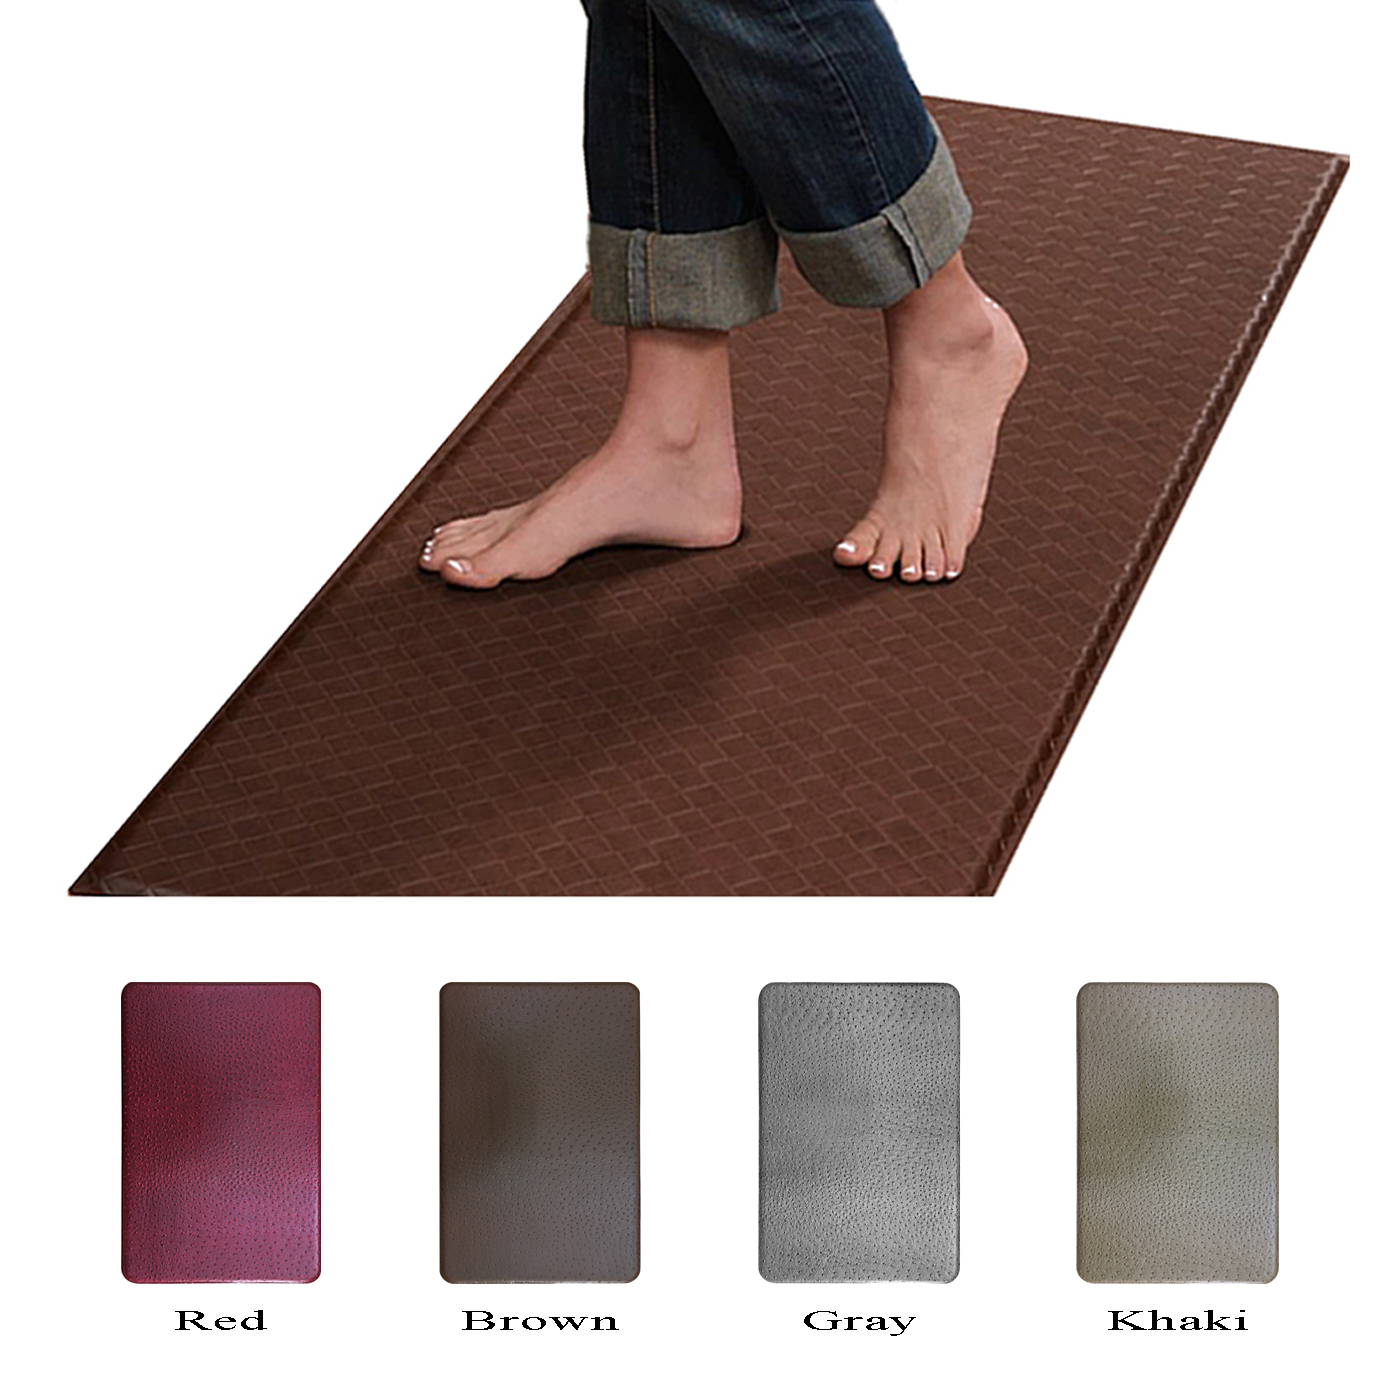 a kitchen mat like youve never experienced this anti fatigue kitchen mat is an essential kitchen accessory for anyone who feels discomfort while on their. Interior Design Ideas. Home Design Ideas